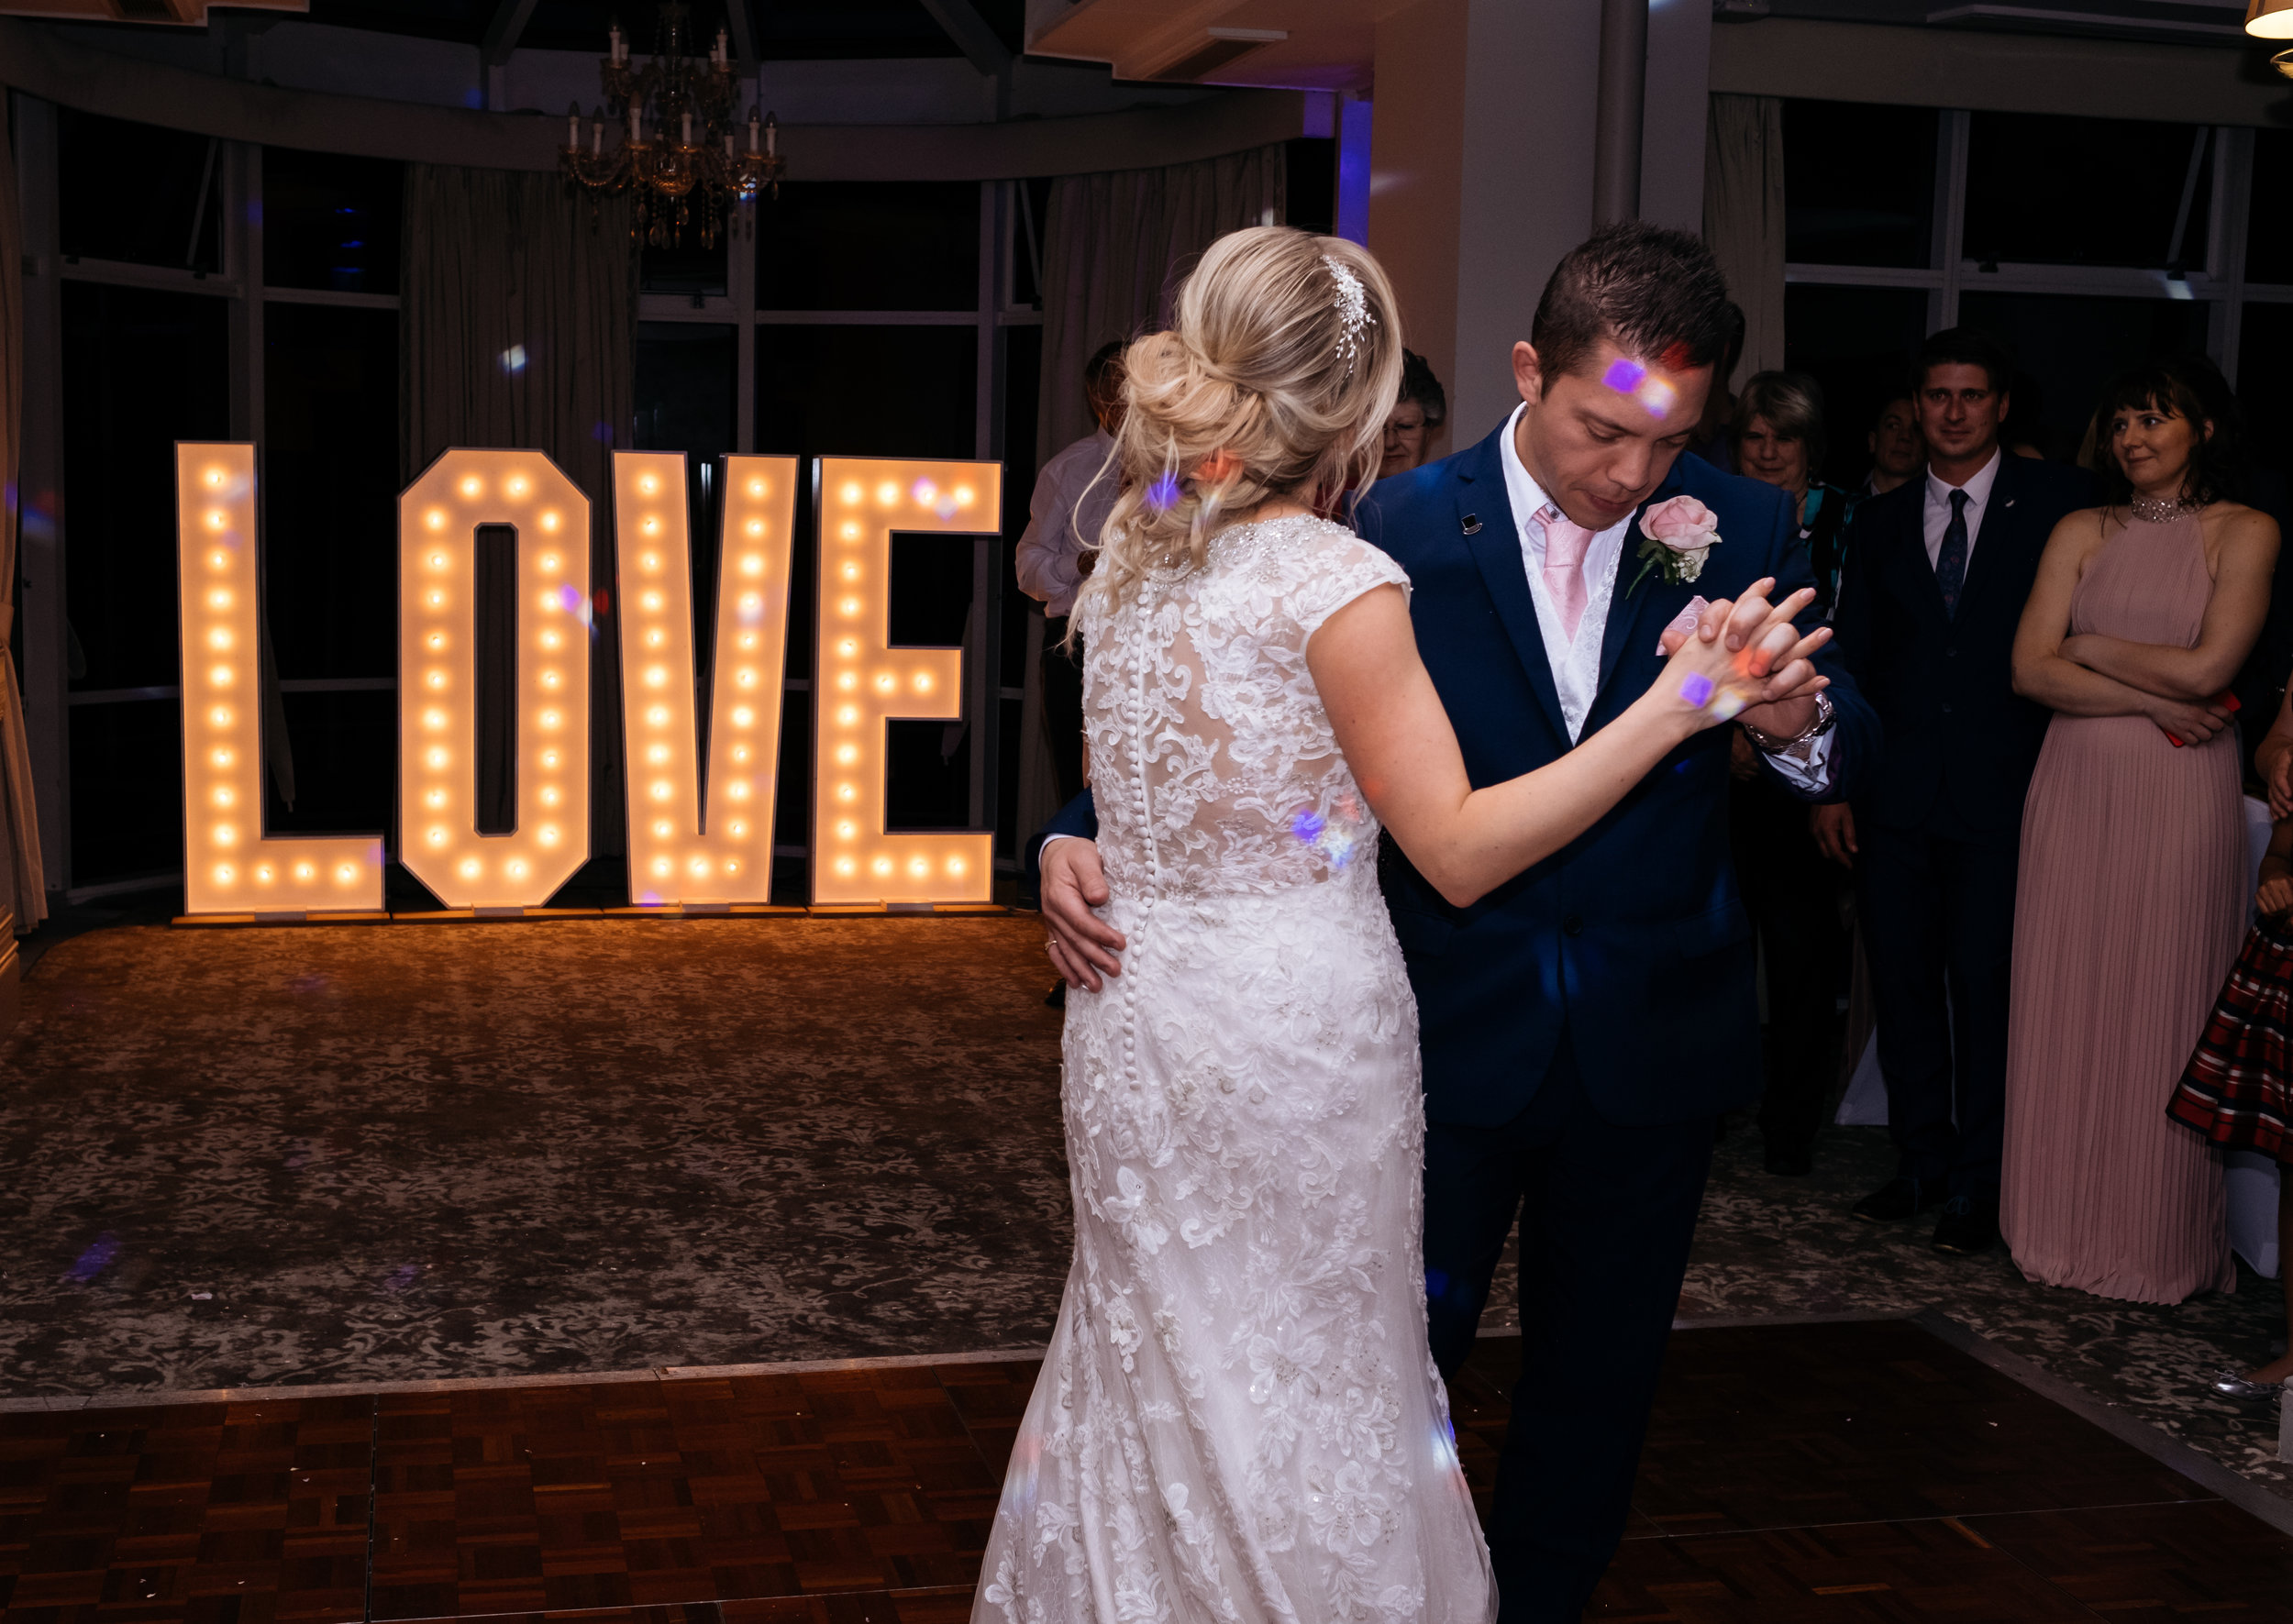 Bride and groom first dance at Mercure Newbury Elcot Park Hotel wedding with giant LOVE lit up sign